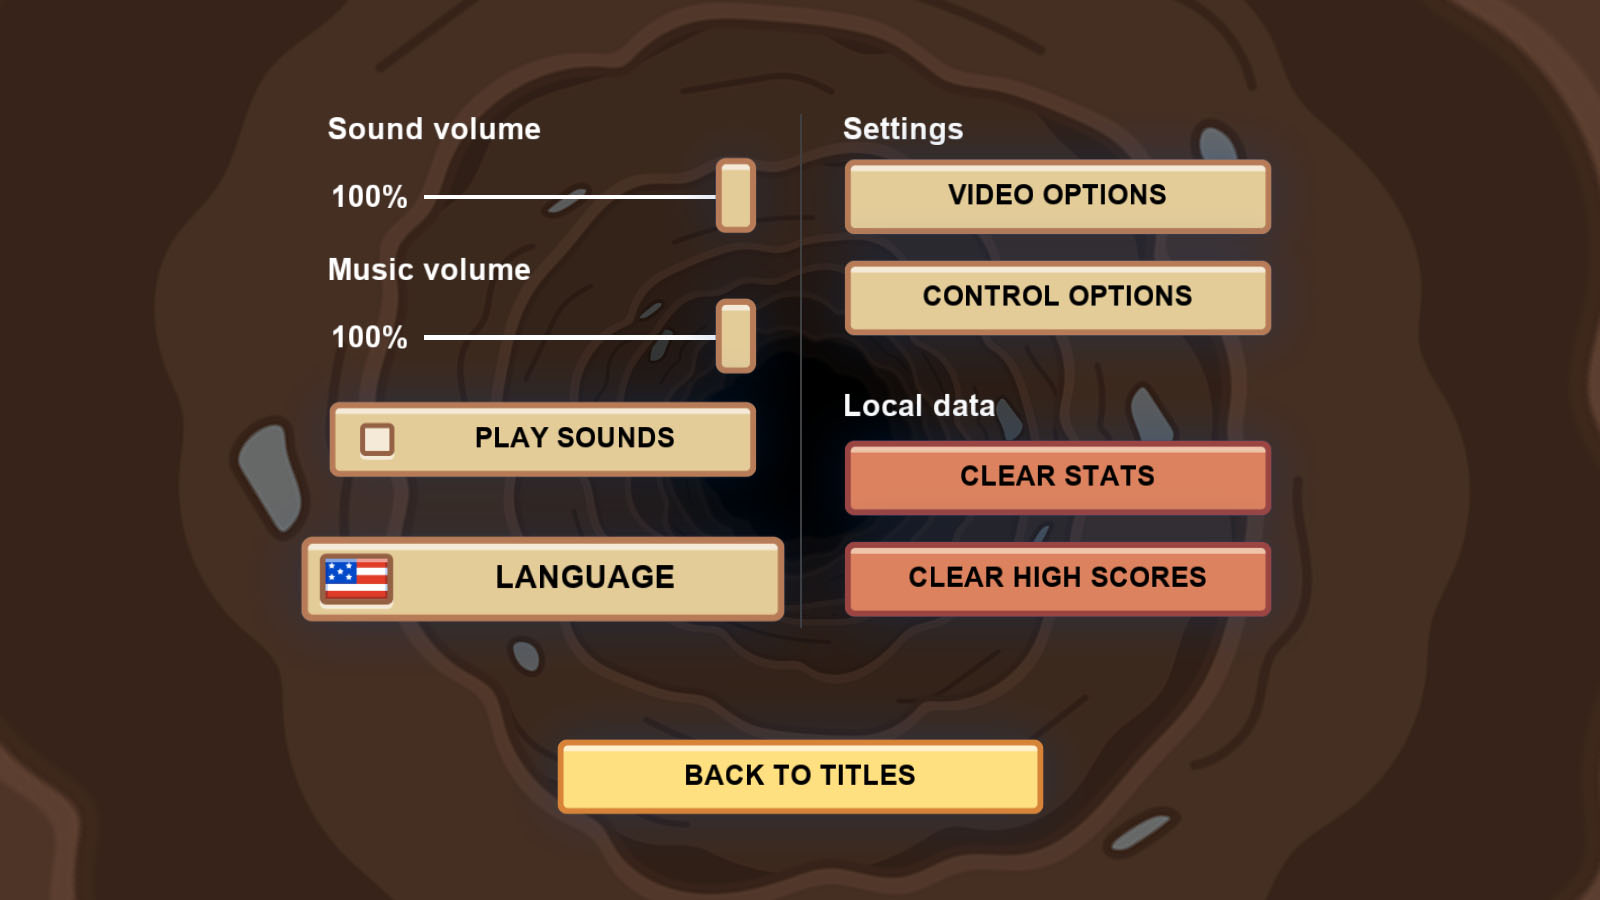 Options menu, with new language button